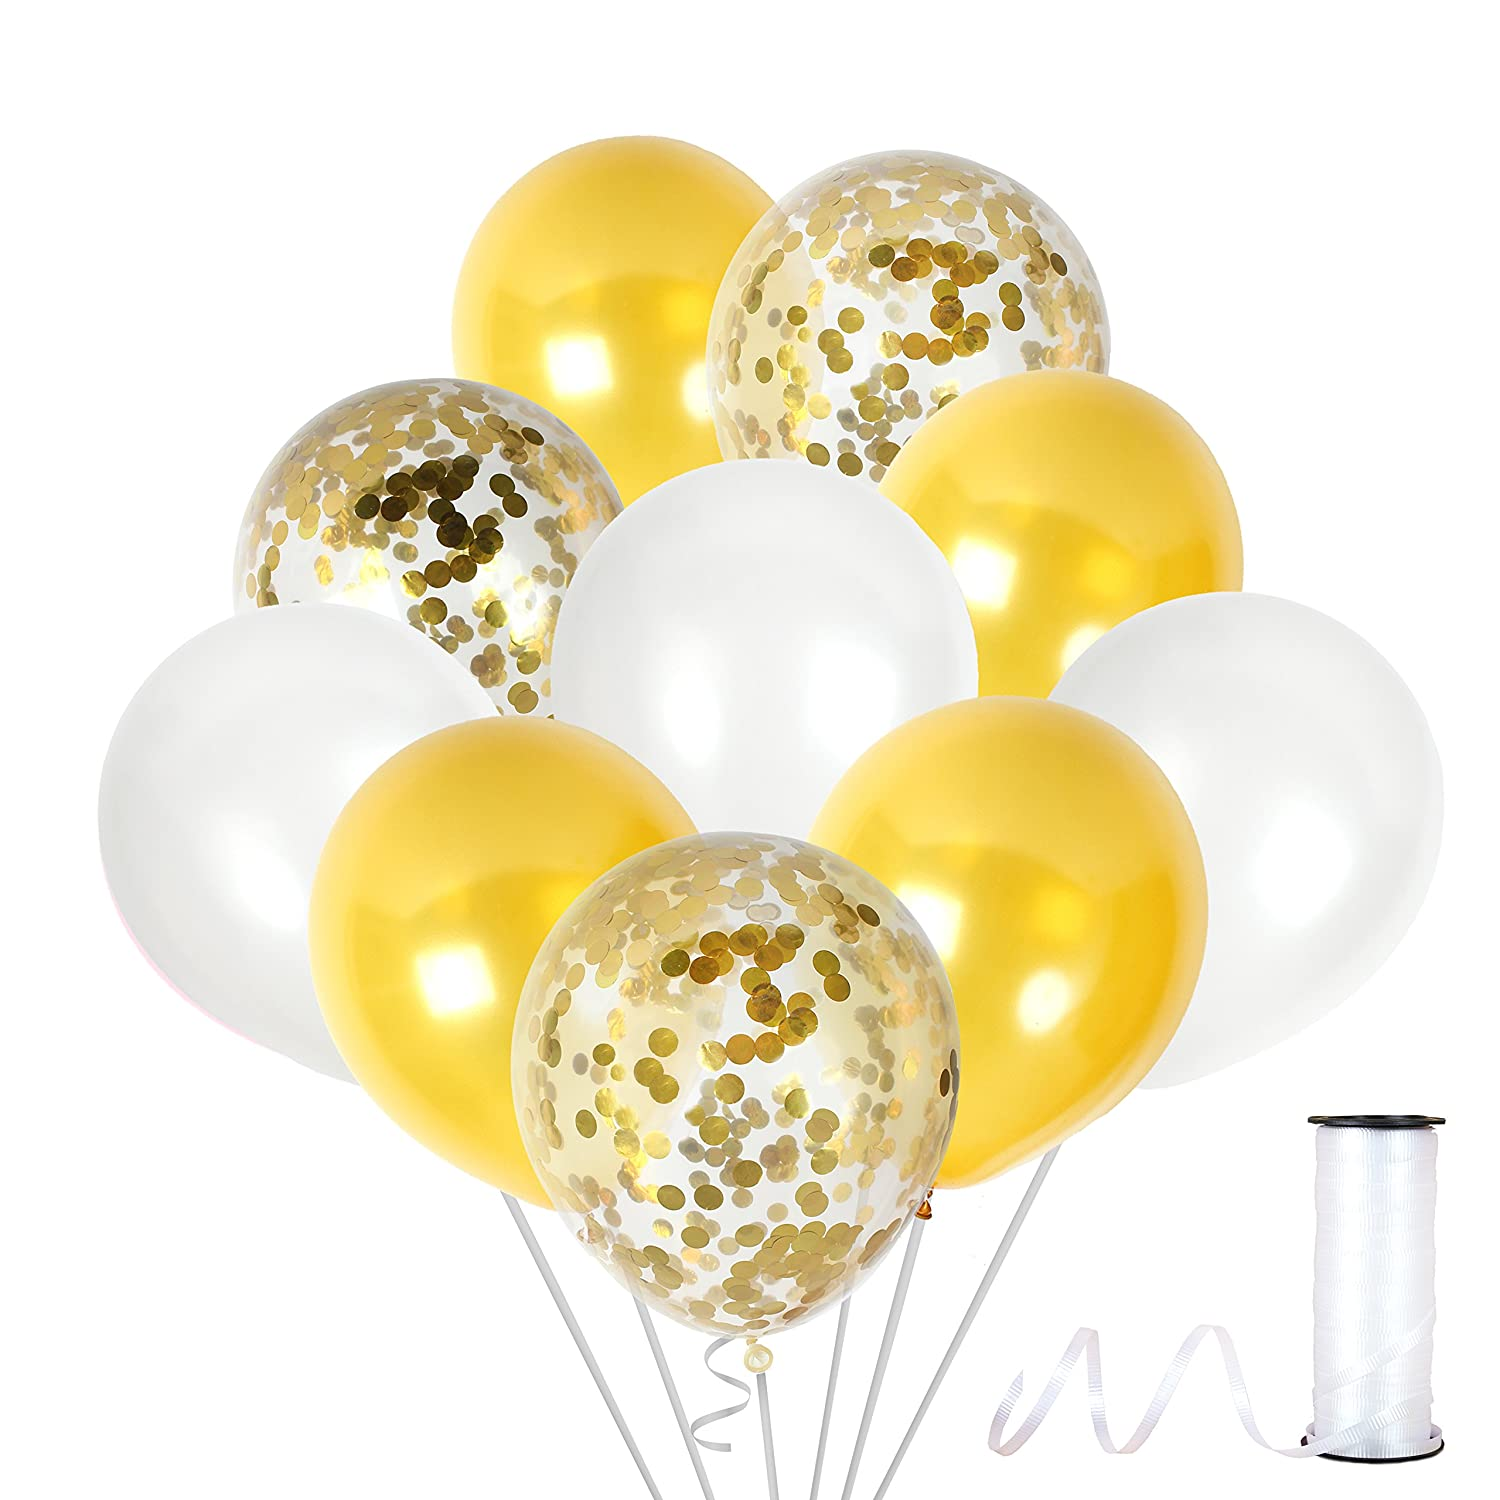 Amazon.com: Gold Latex Balloon + 12 Clear Gold Confetti Balloons ...